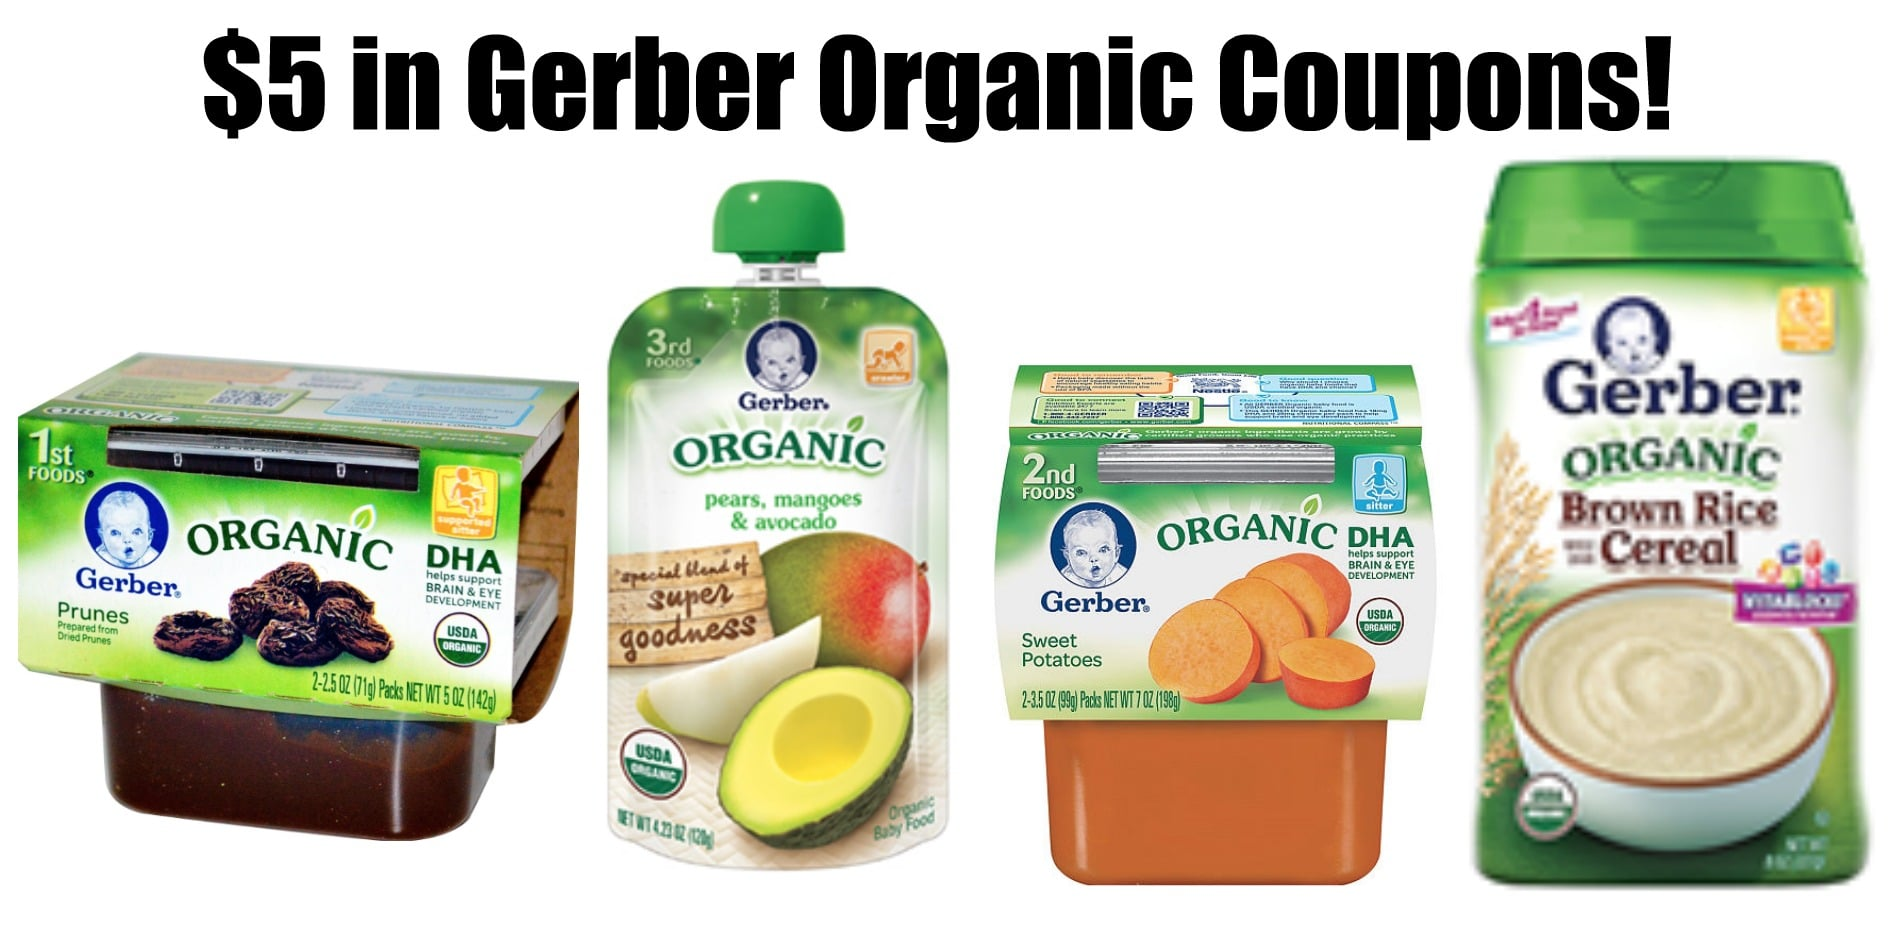 Where Can I Buy Gerber Baby Food Online